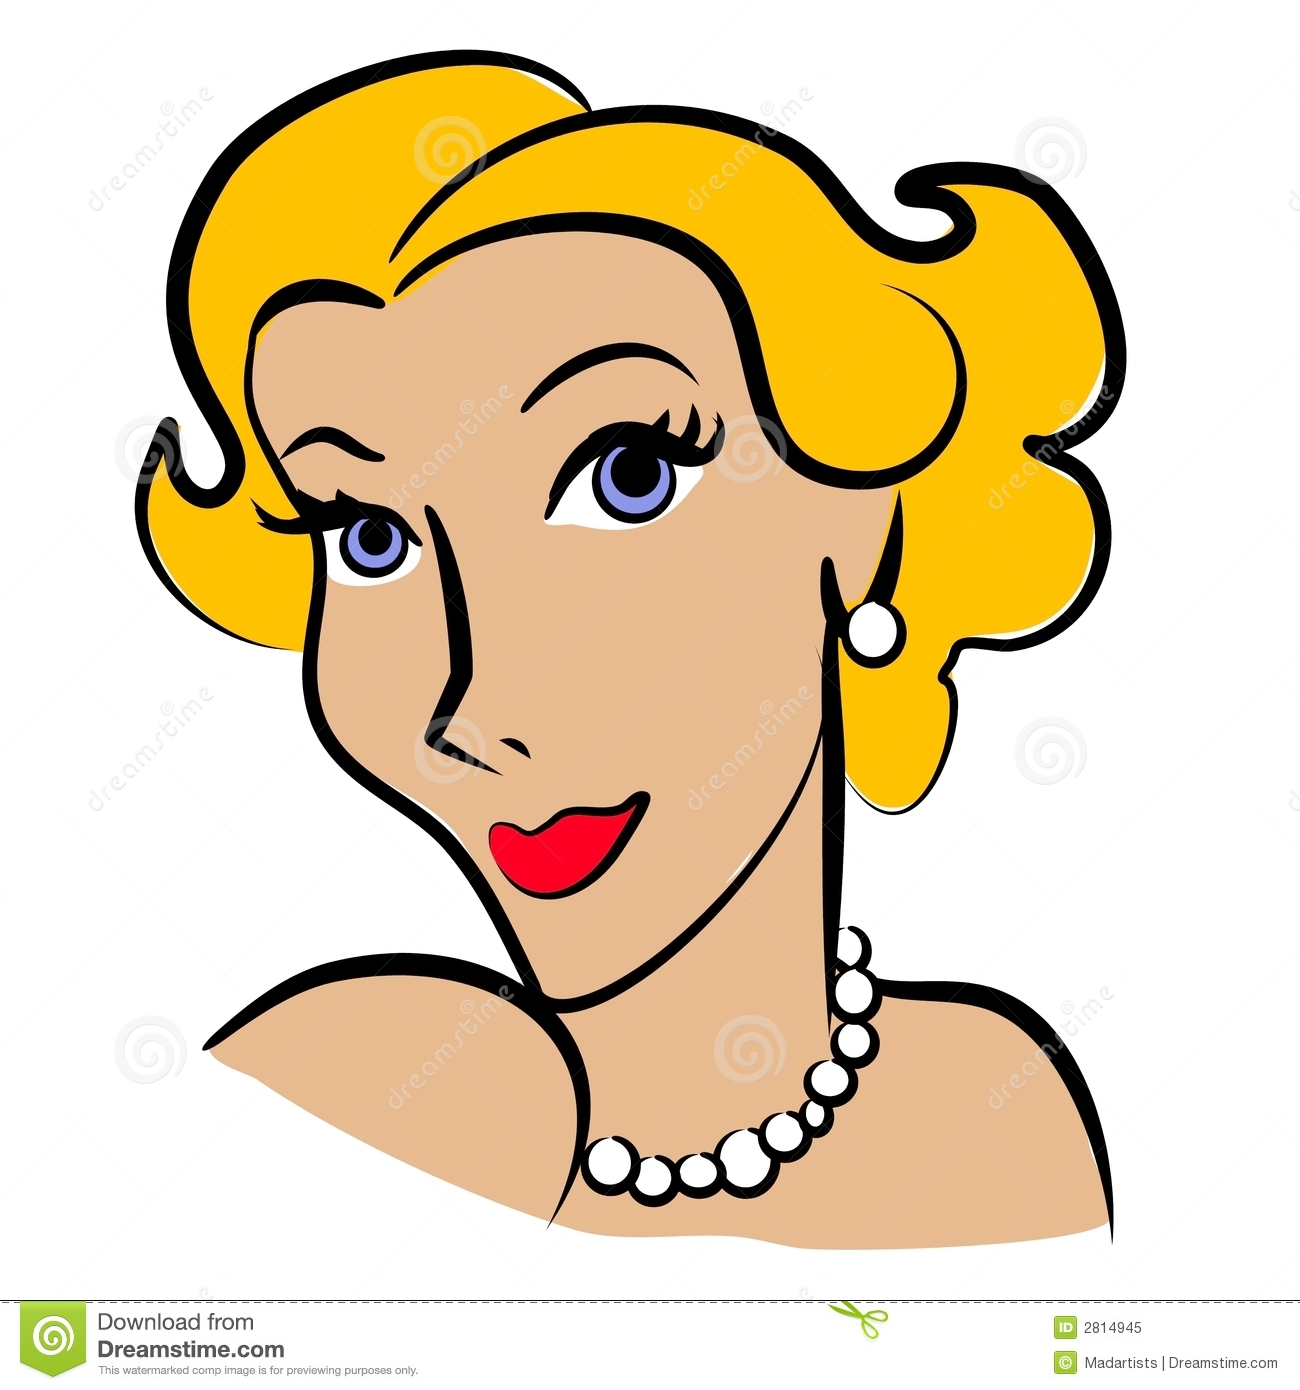 Clipartfest blondeclipartretrowoman . Blonde mother clipart real